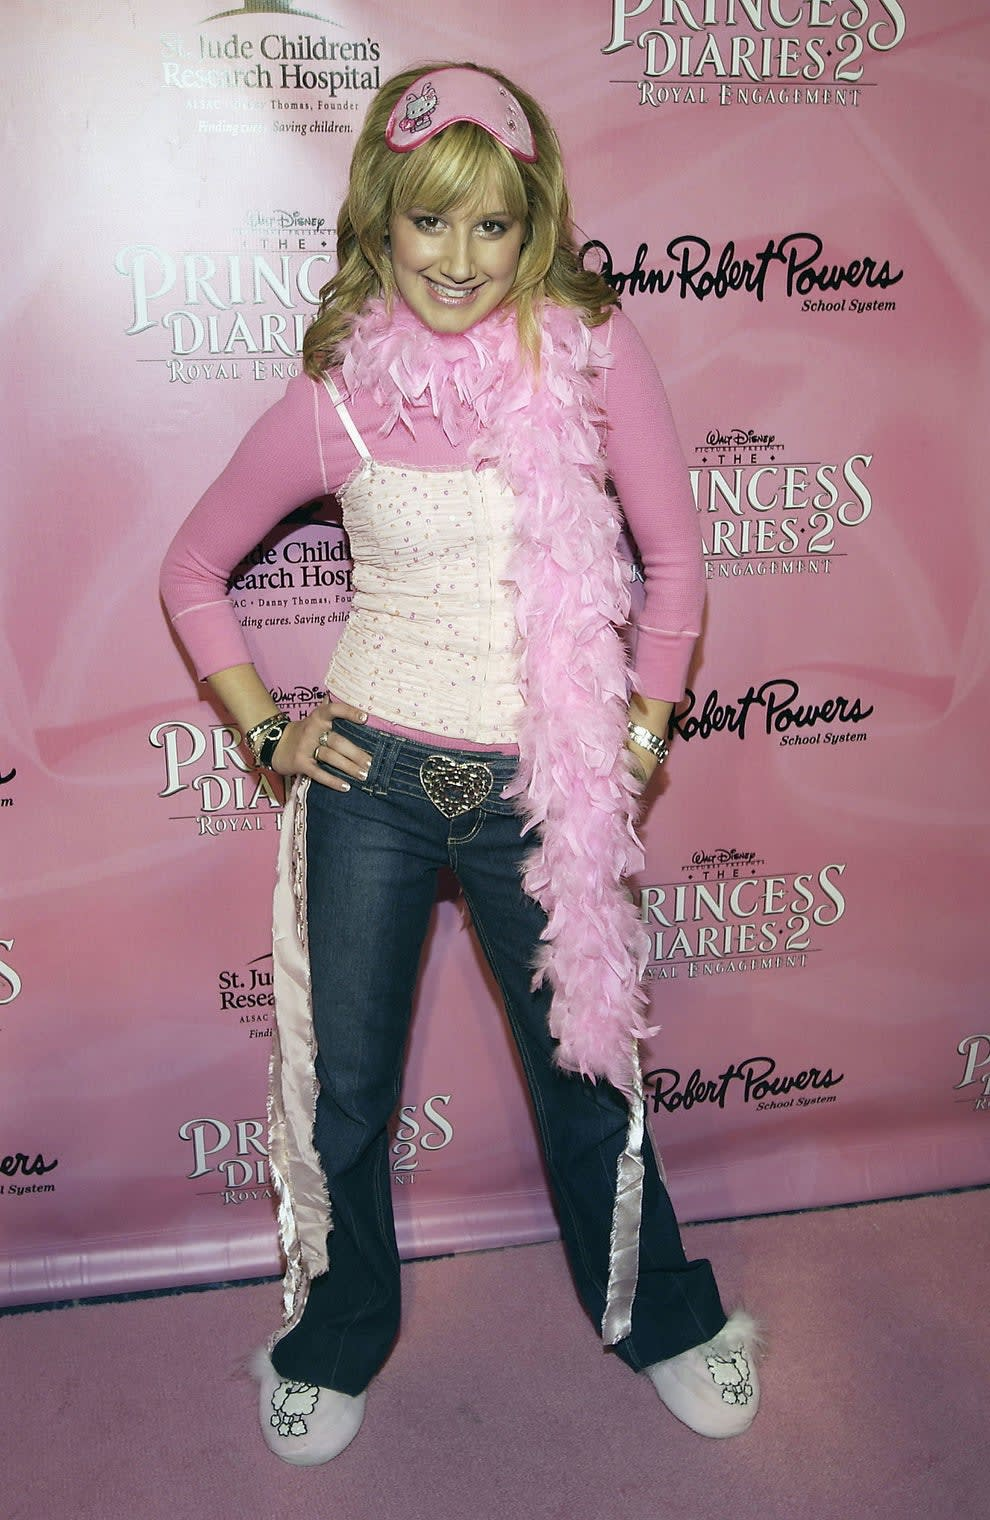 Ashley wears a printed tank top layered on top of a long sleeved shirt. She has a feather boa, slippers with poodles on them, and a sleep mask on her head.he also wears jeans with pink ribbons coming from the side and a belt in the shape of a heart.